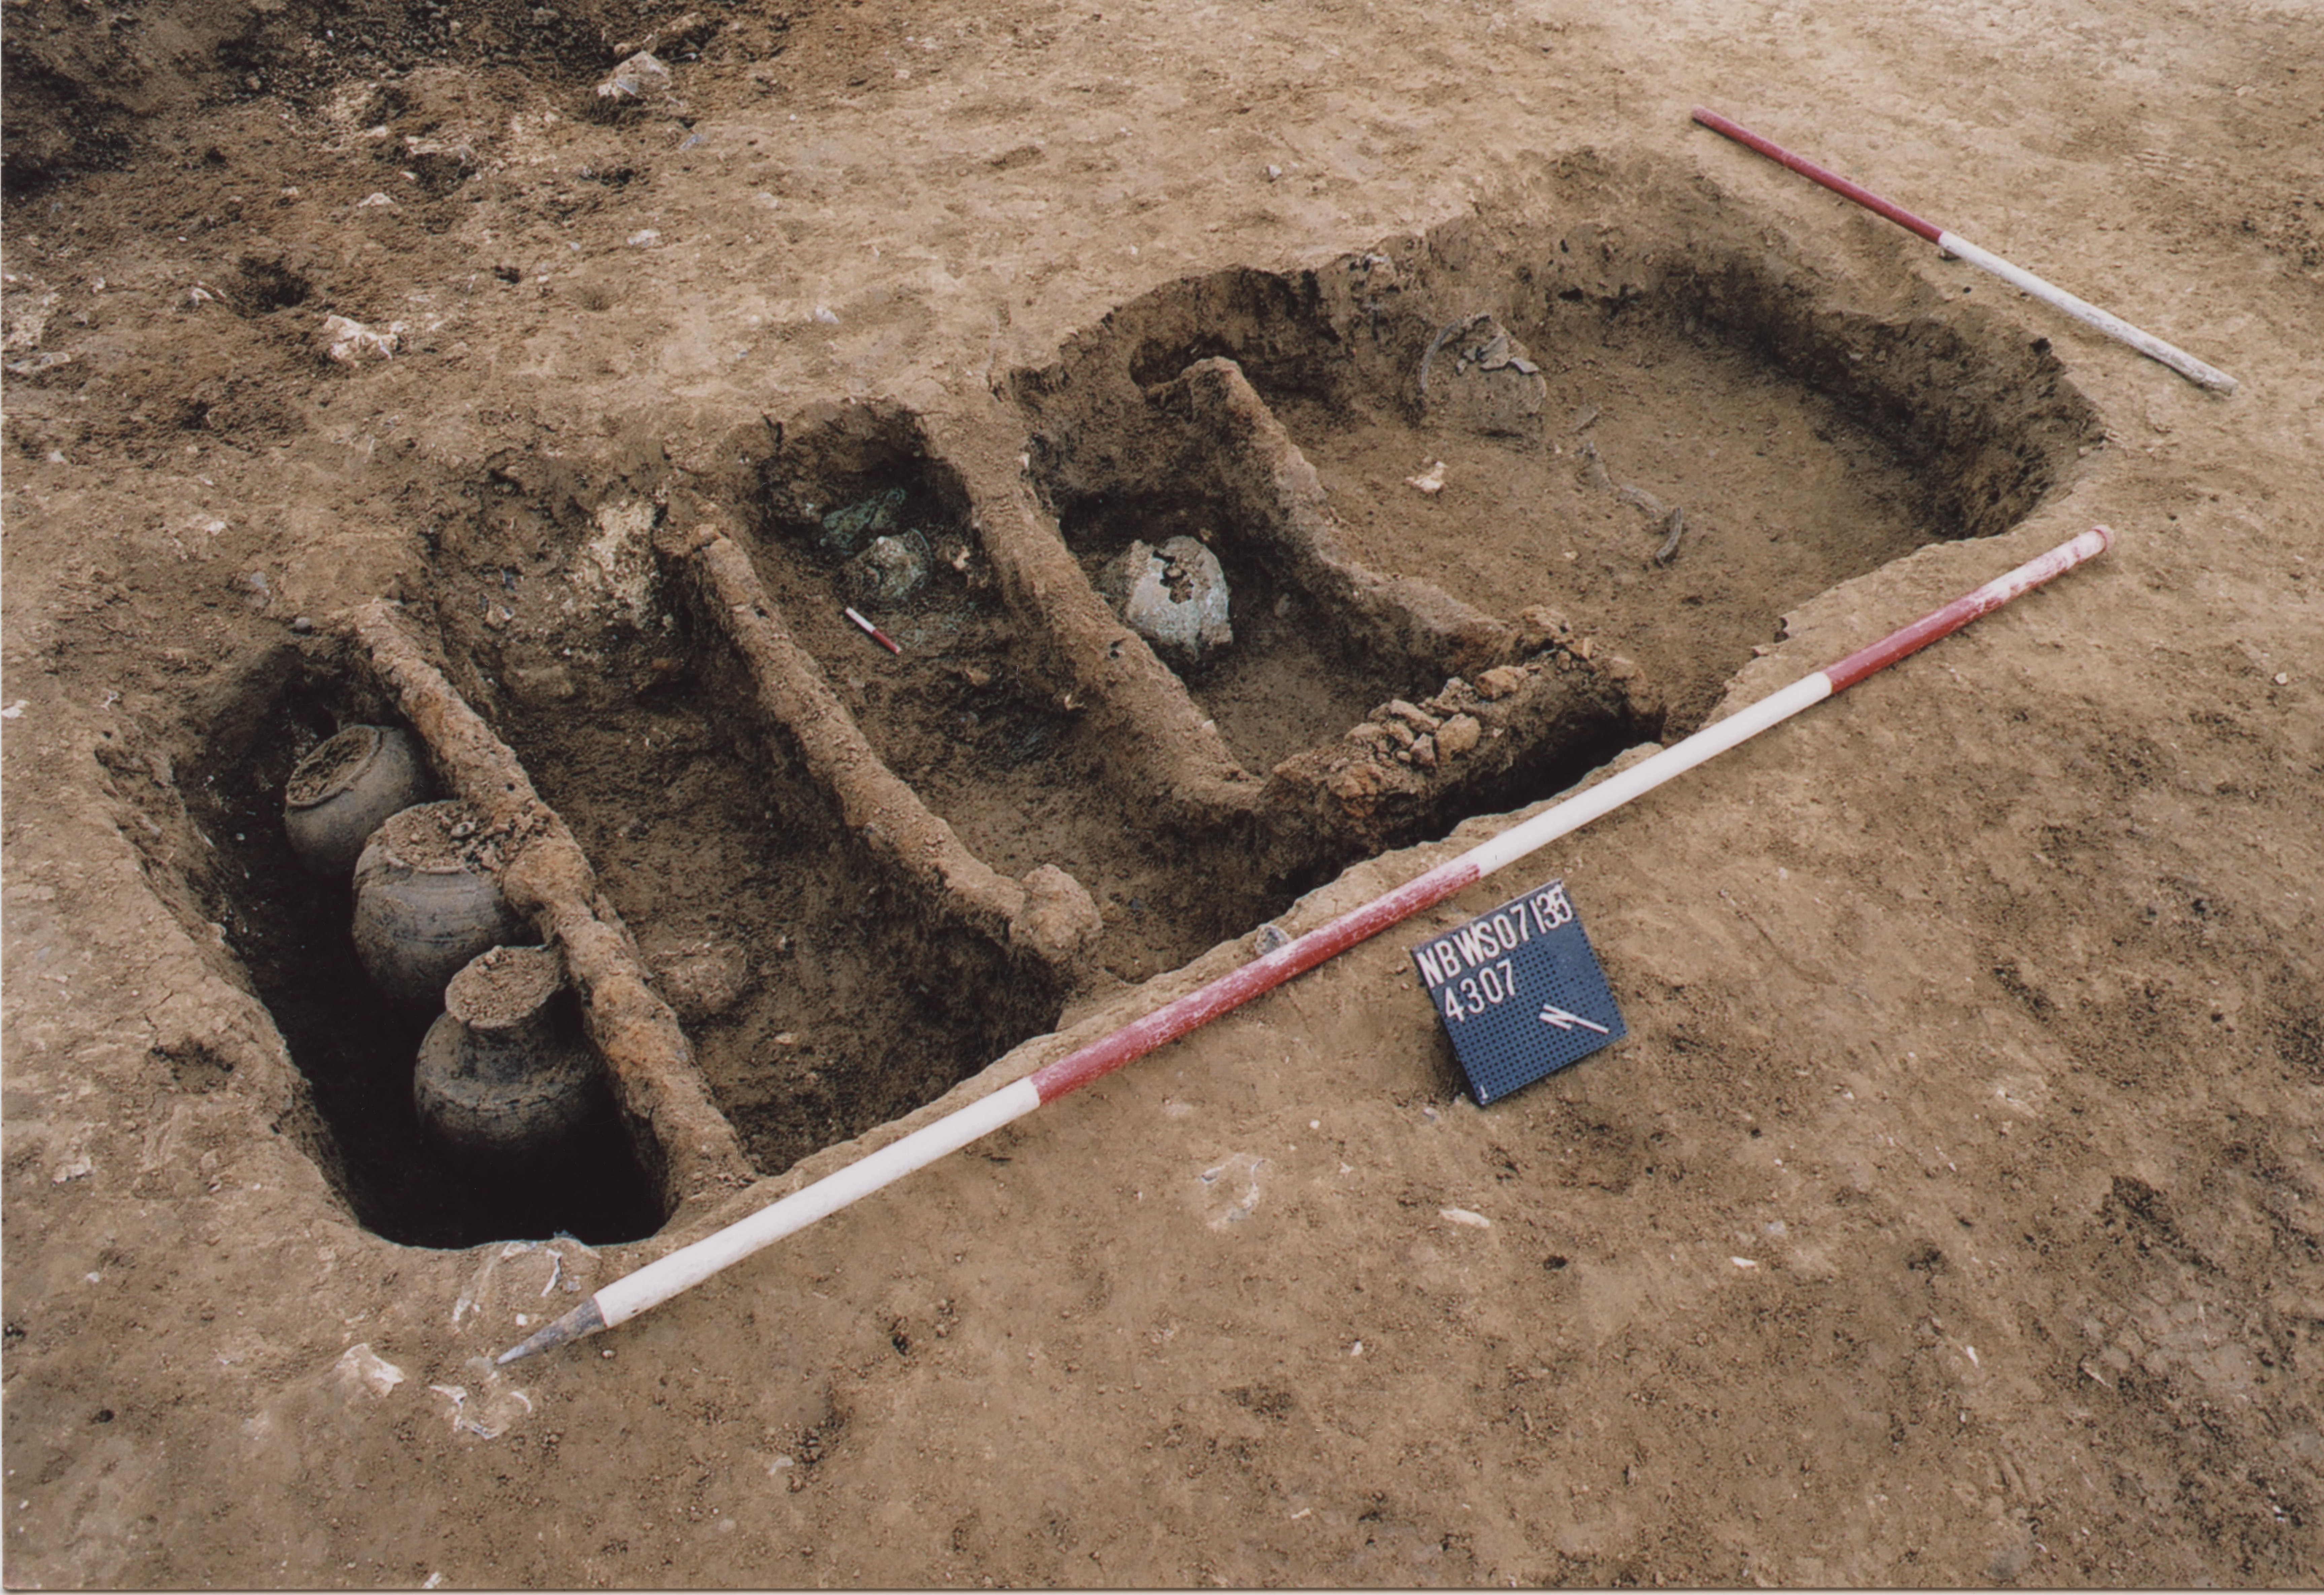 The Mystery Warrior's grave, part was through excavation. Just visible are the shield boss and helmet. Image courtesy of Thames Valley Archaeological Services Ltd